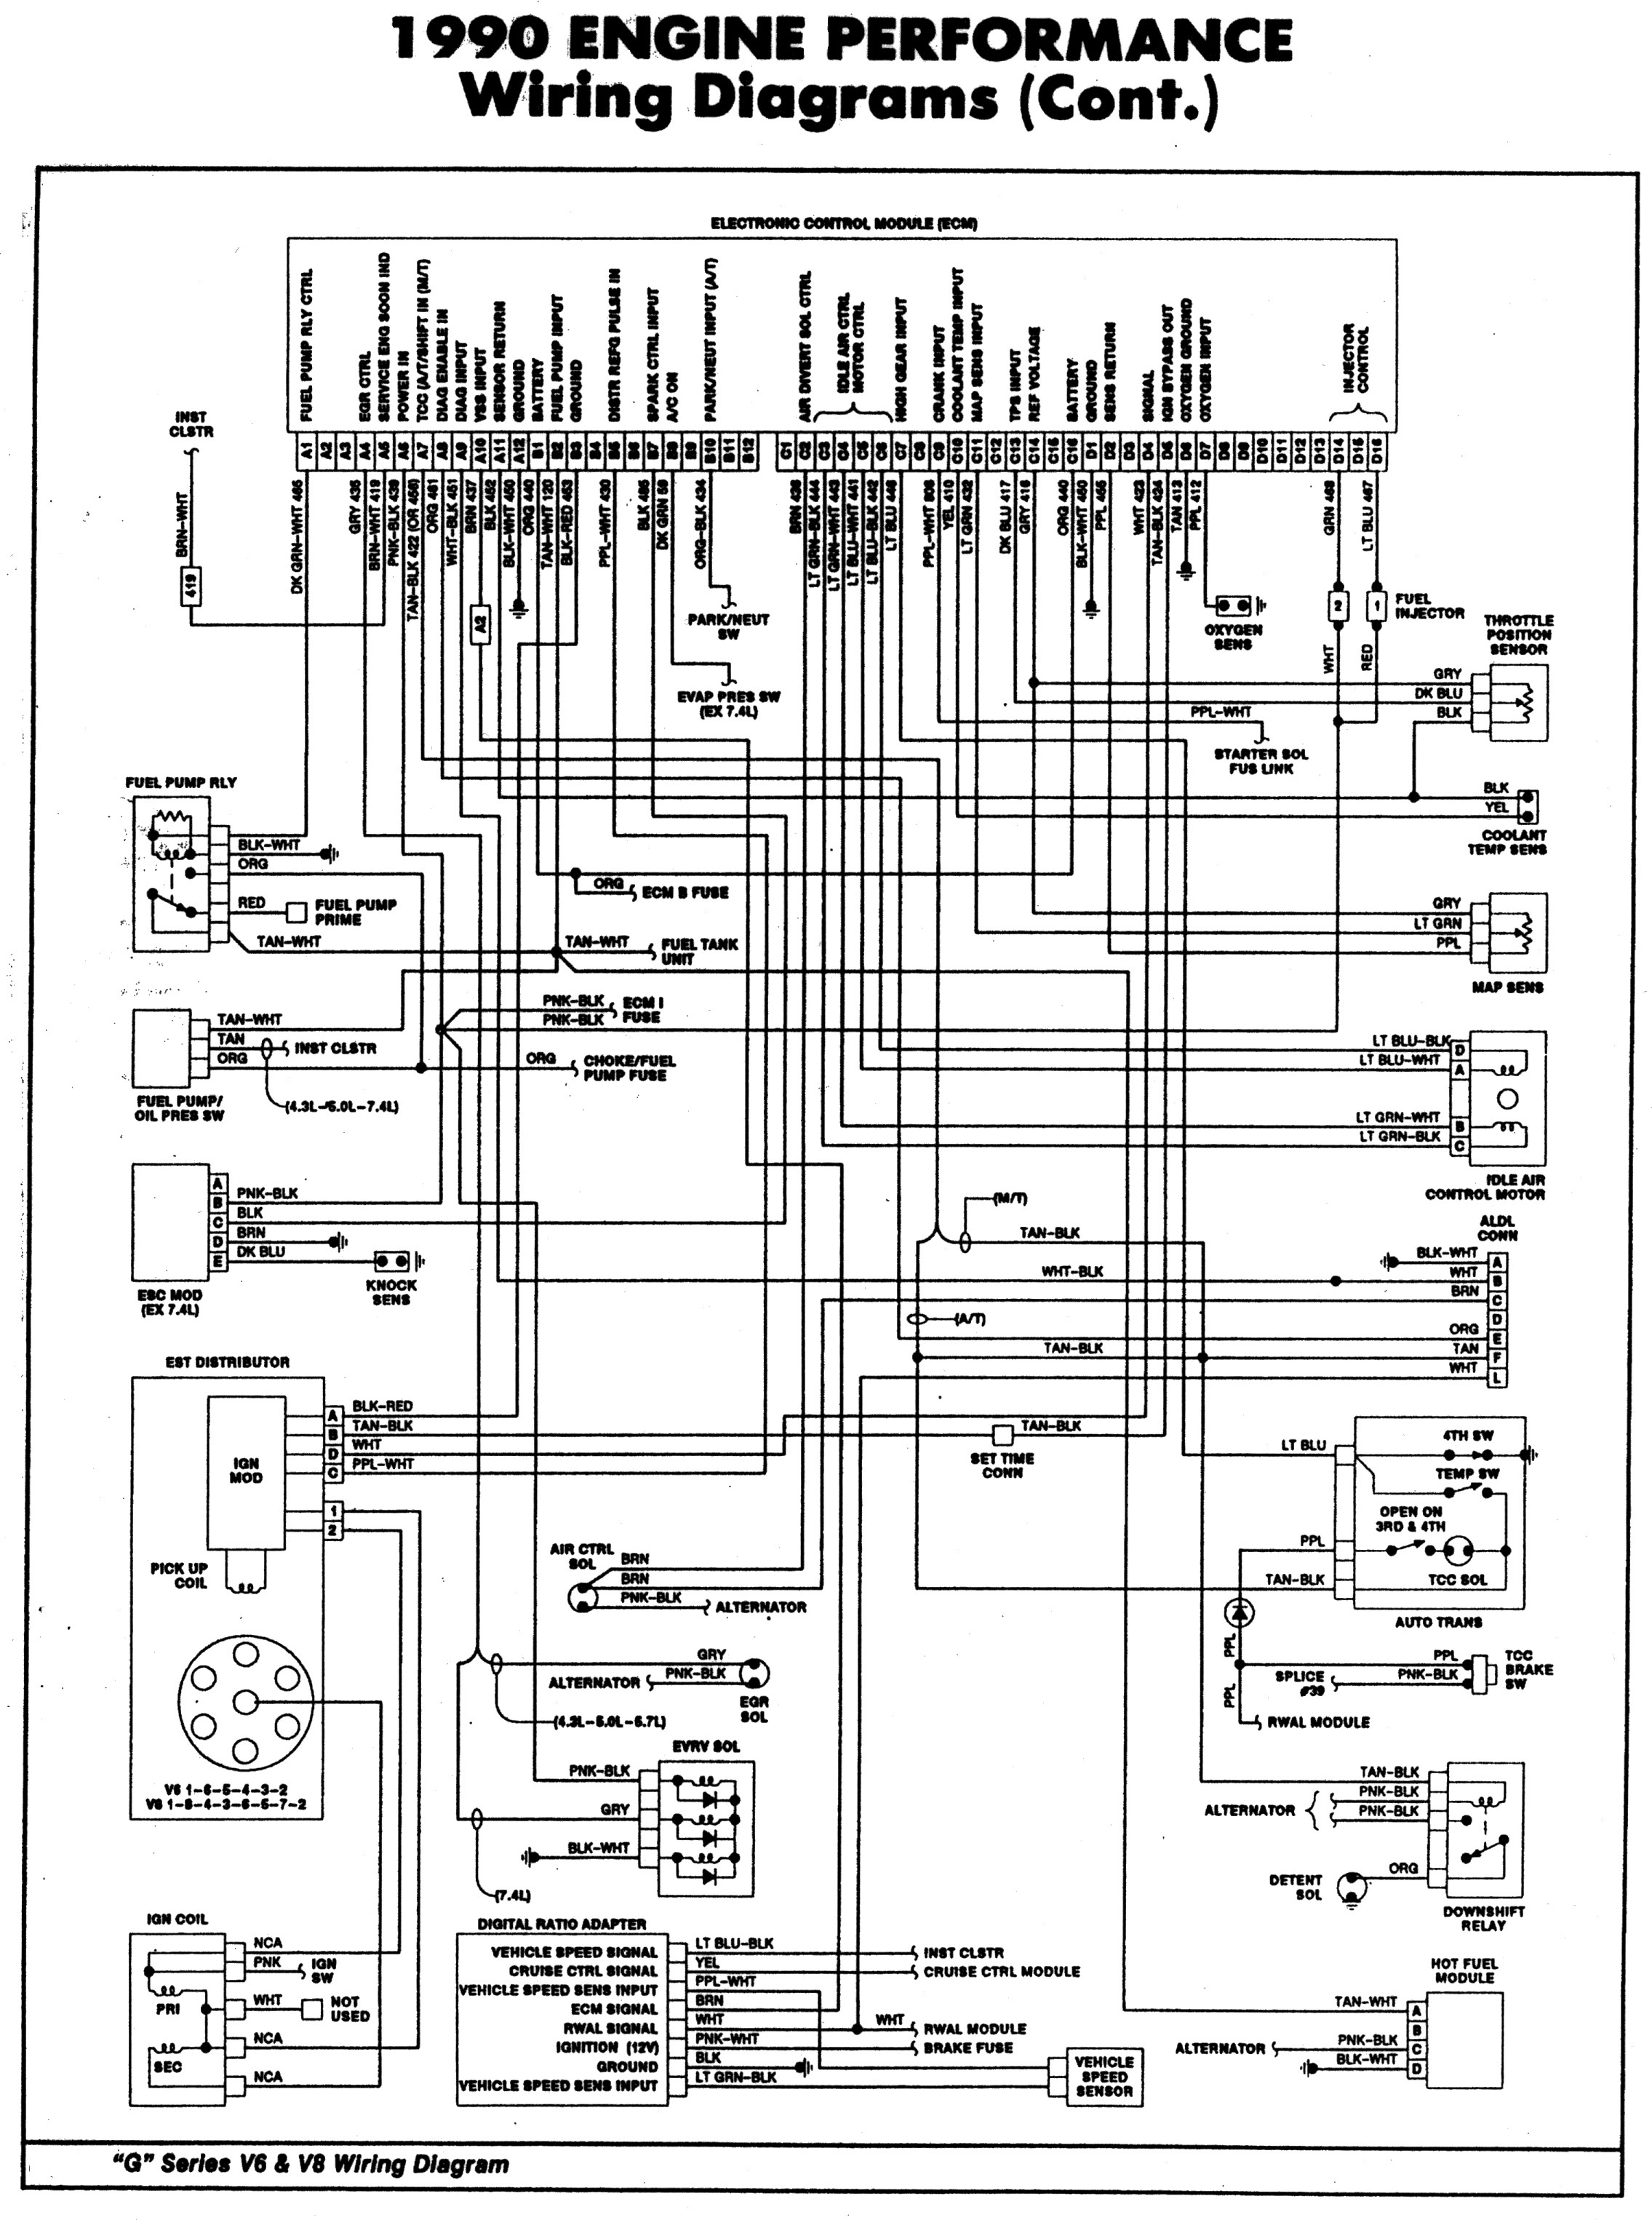 small resolution of 1990 chevy 350 tbi wiring diagram wiring diagrams konsult fuel further 1990 chevy 350 tbi fuel system diagram on inline fuel